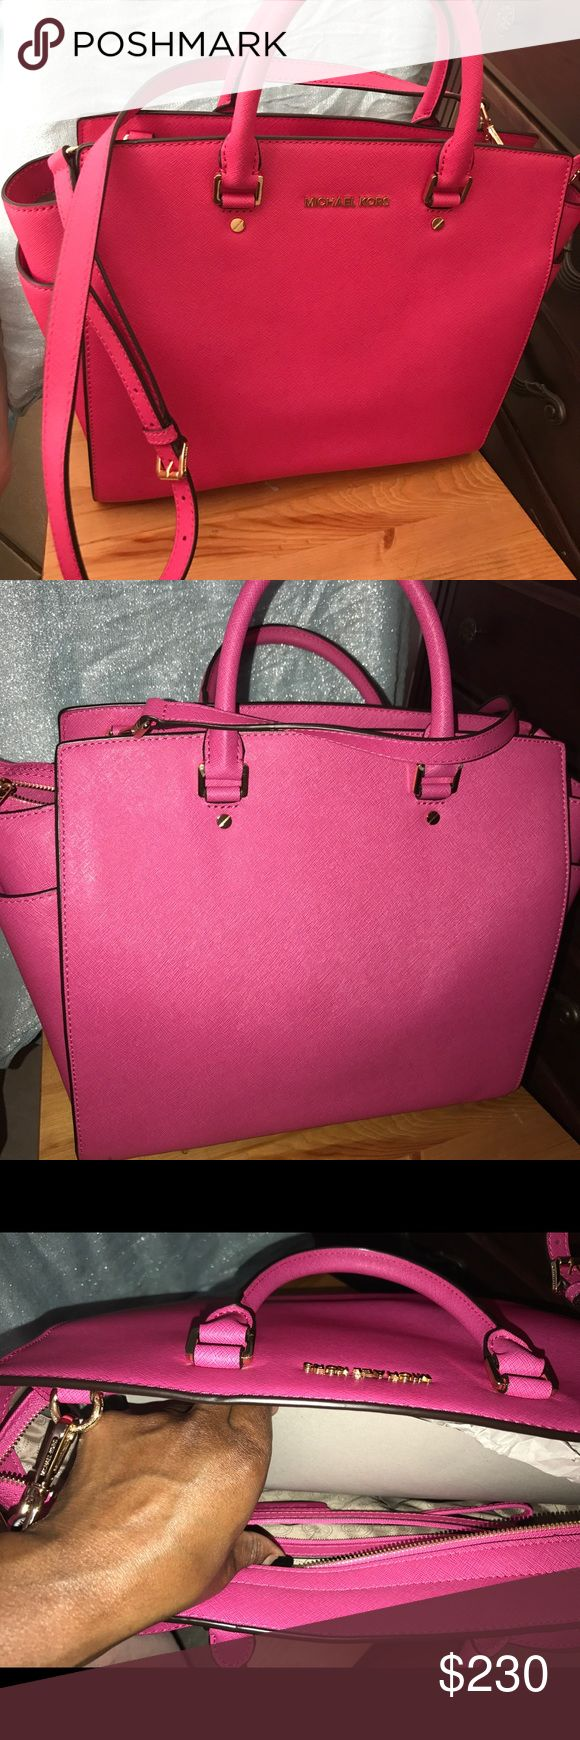 Pink Michael Kors bag Brand new pink Michael Kors handbag with the duster bag used once with no marks of any sorts. In impeccable condition like brand new. Michael Kors Bags Satchels